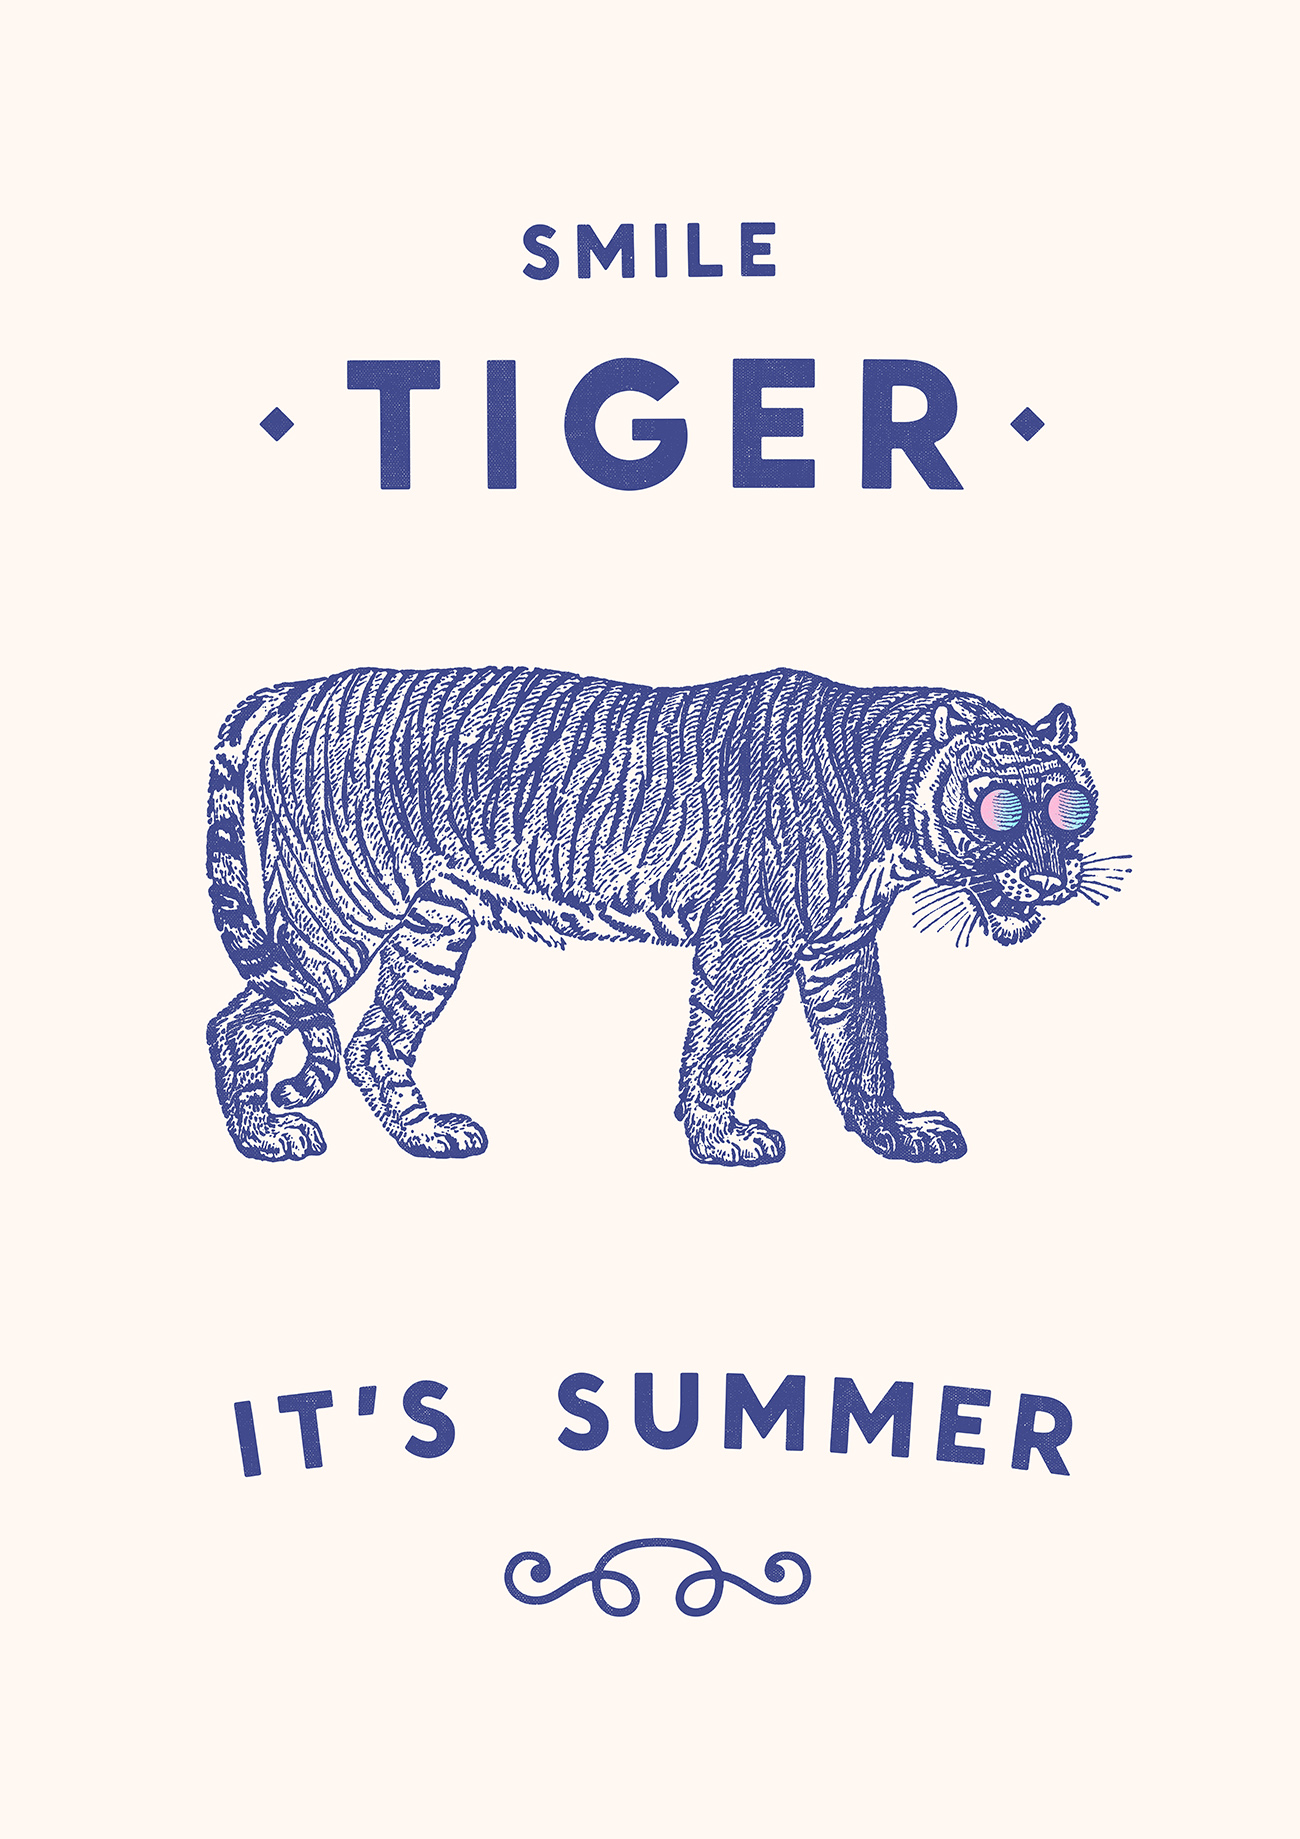 <dive><h1>Smile Tiger it's Summer</h1></dive>